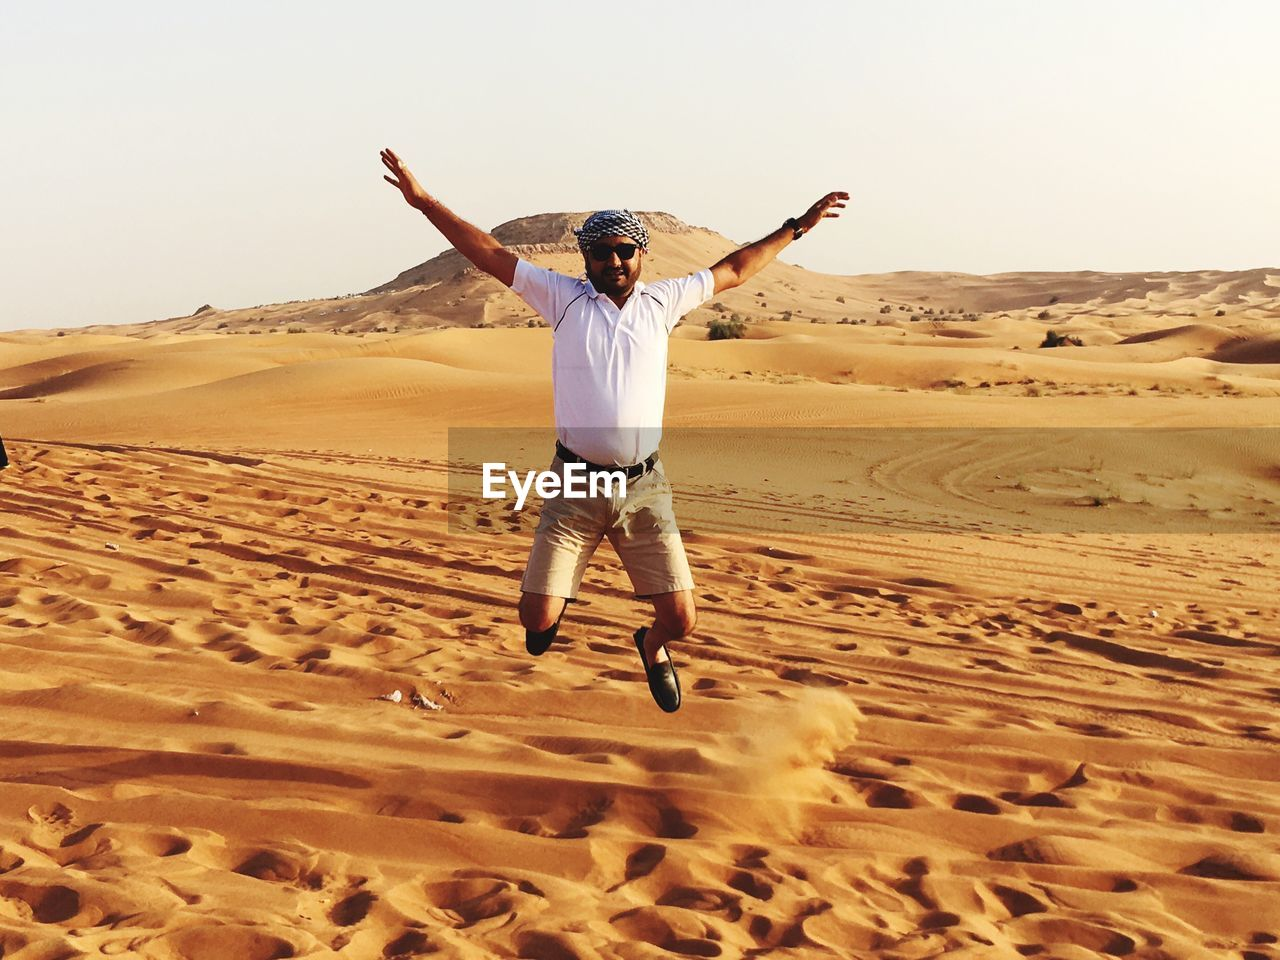 Full length of man jumping in desert